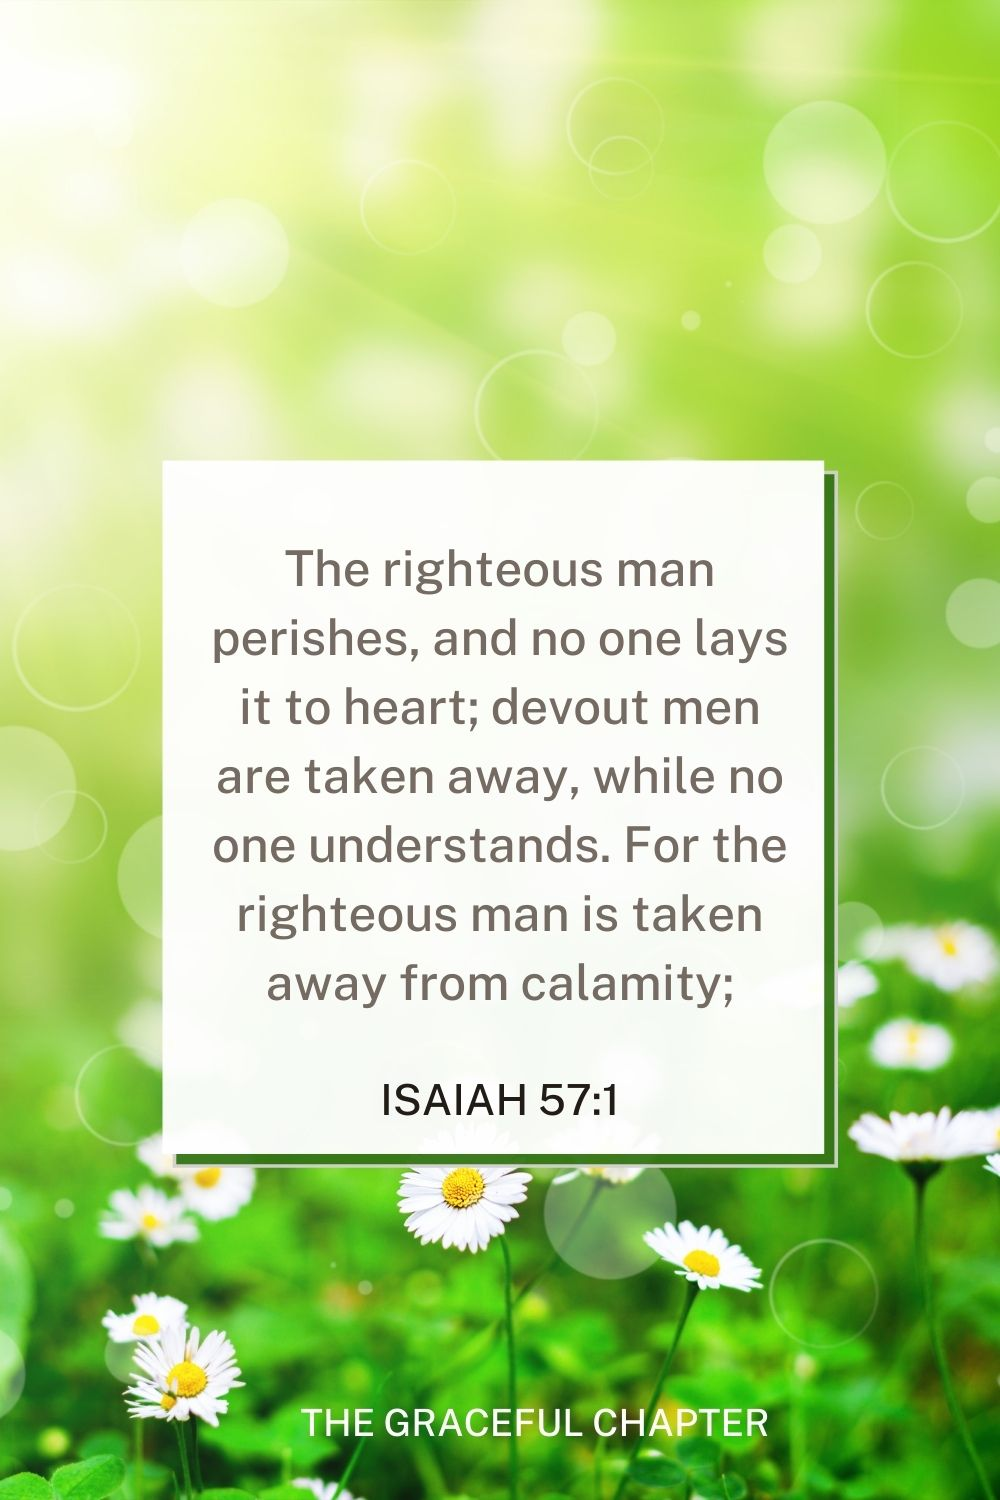 The righteous man perishes, and no one lays it to heart; devout men are taken away, while no one understands. For the righteous man is taken away from calamity; The righteous man perishes, and no one lays it to heart; devout men are taken away, while no one understands. For the righteous man is taken away from calamity; Isaiah 57:1